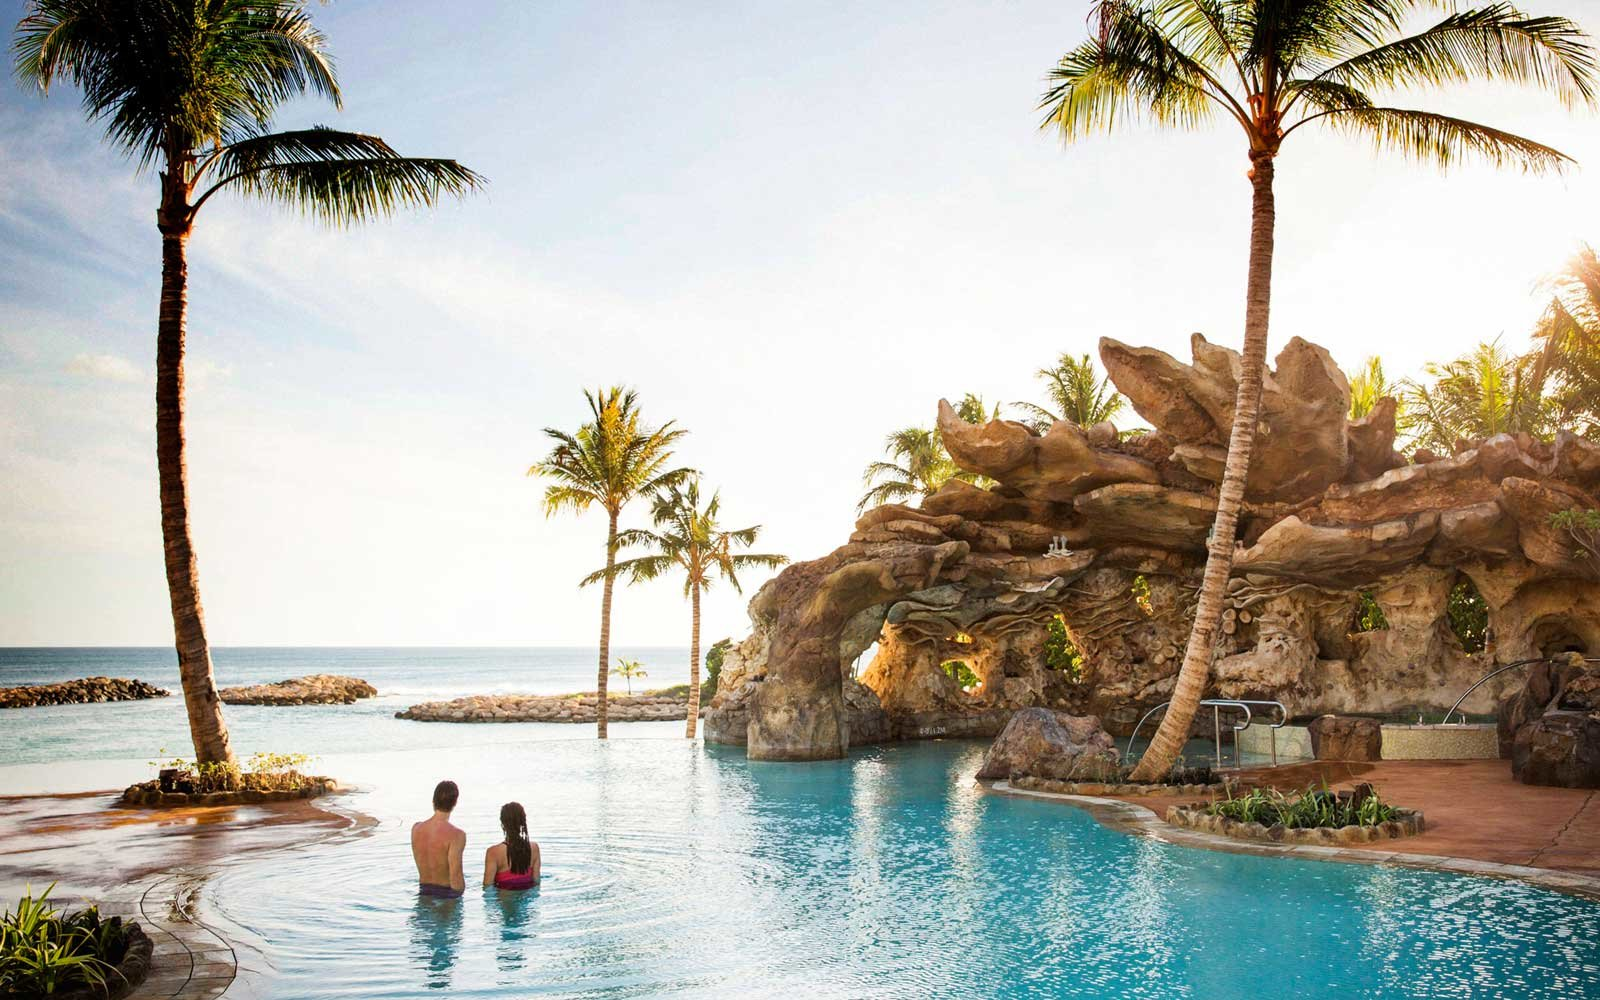 Disney's Hawaiian Resort